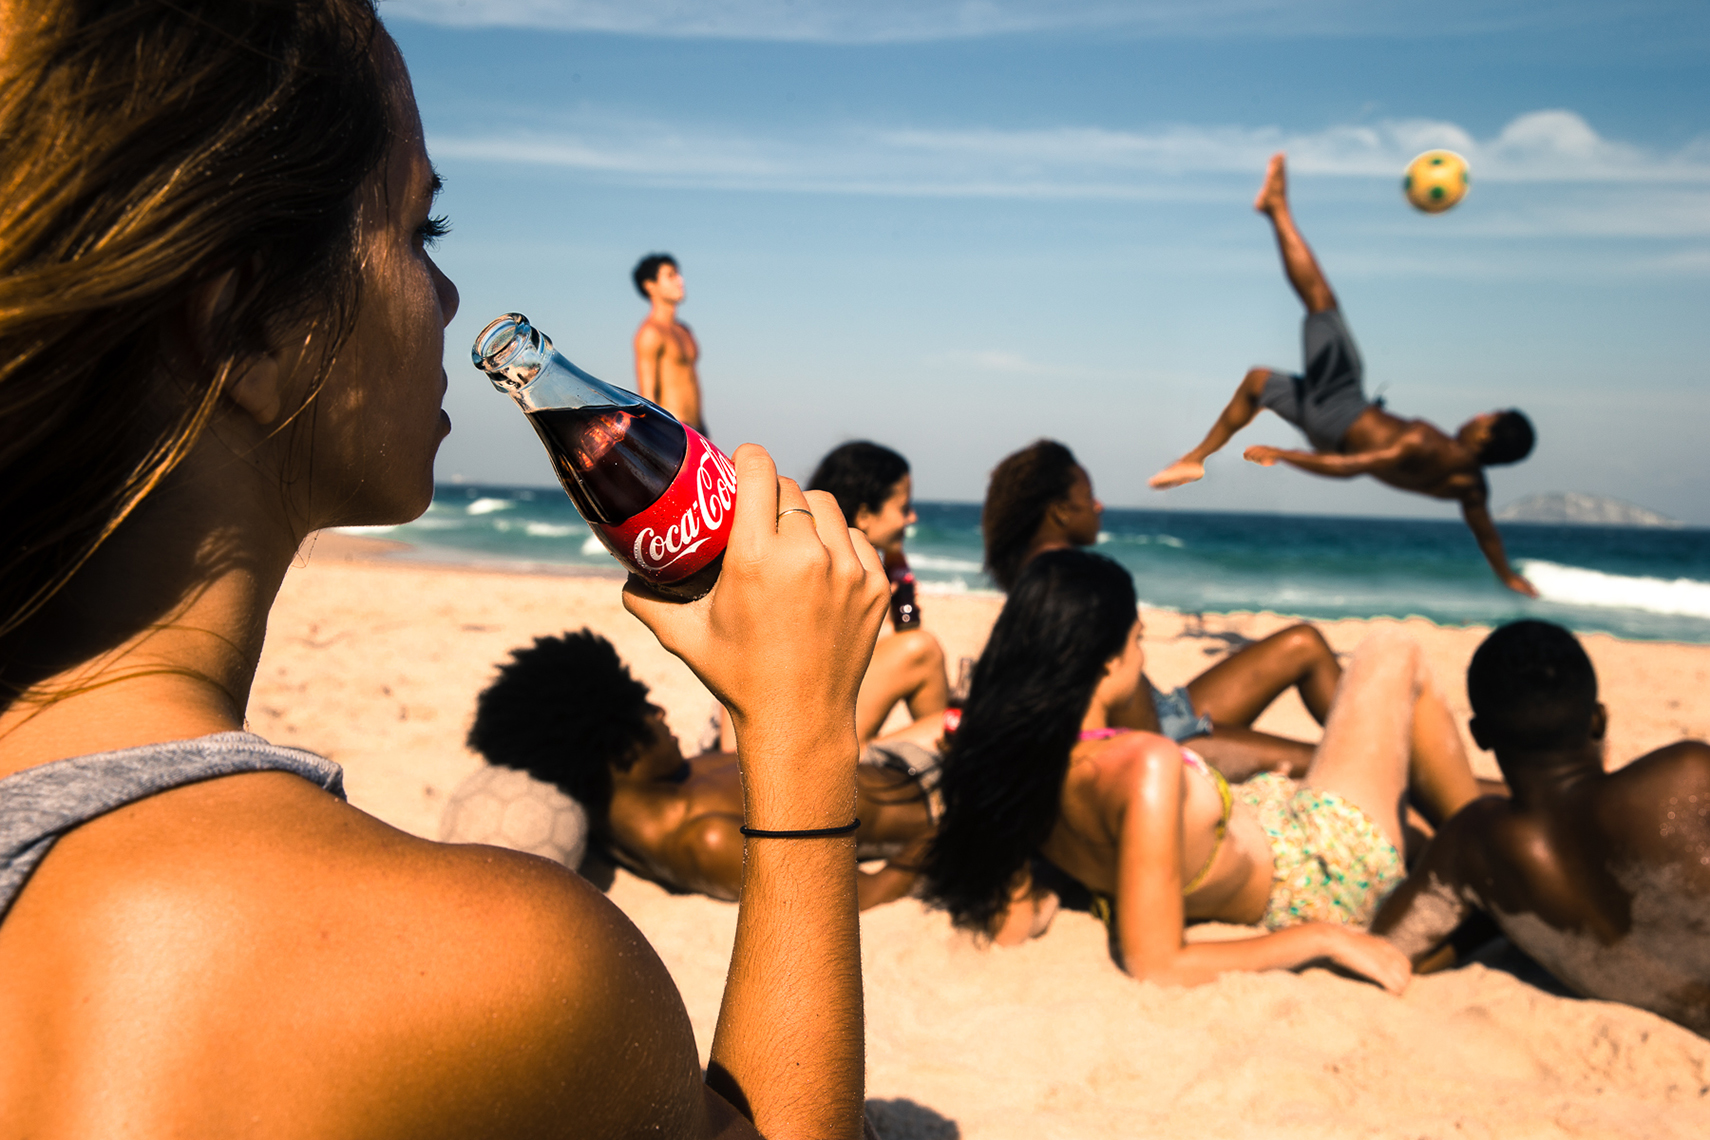 Reinsdorf-Advertising-Coke-Lifestyle-Brazil-World-Cup-Action-008